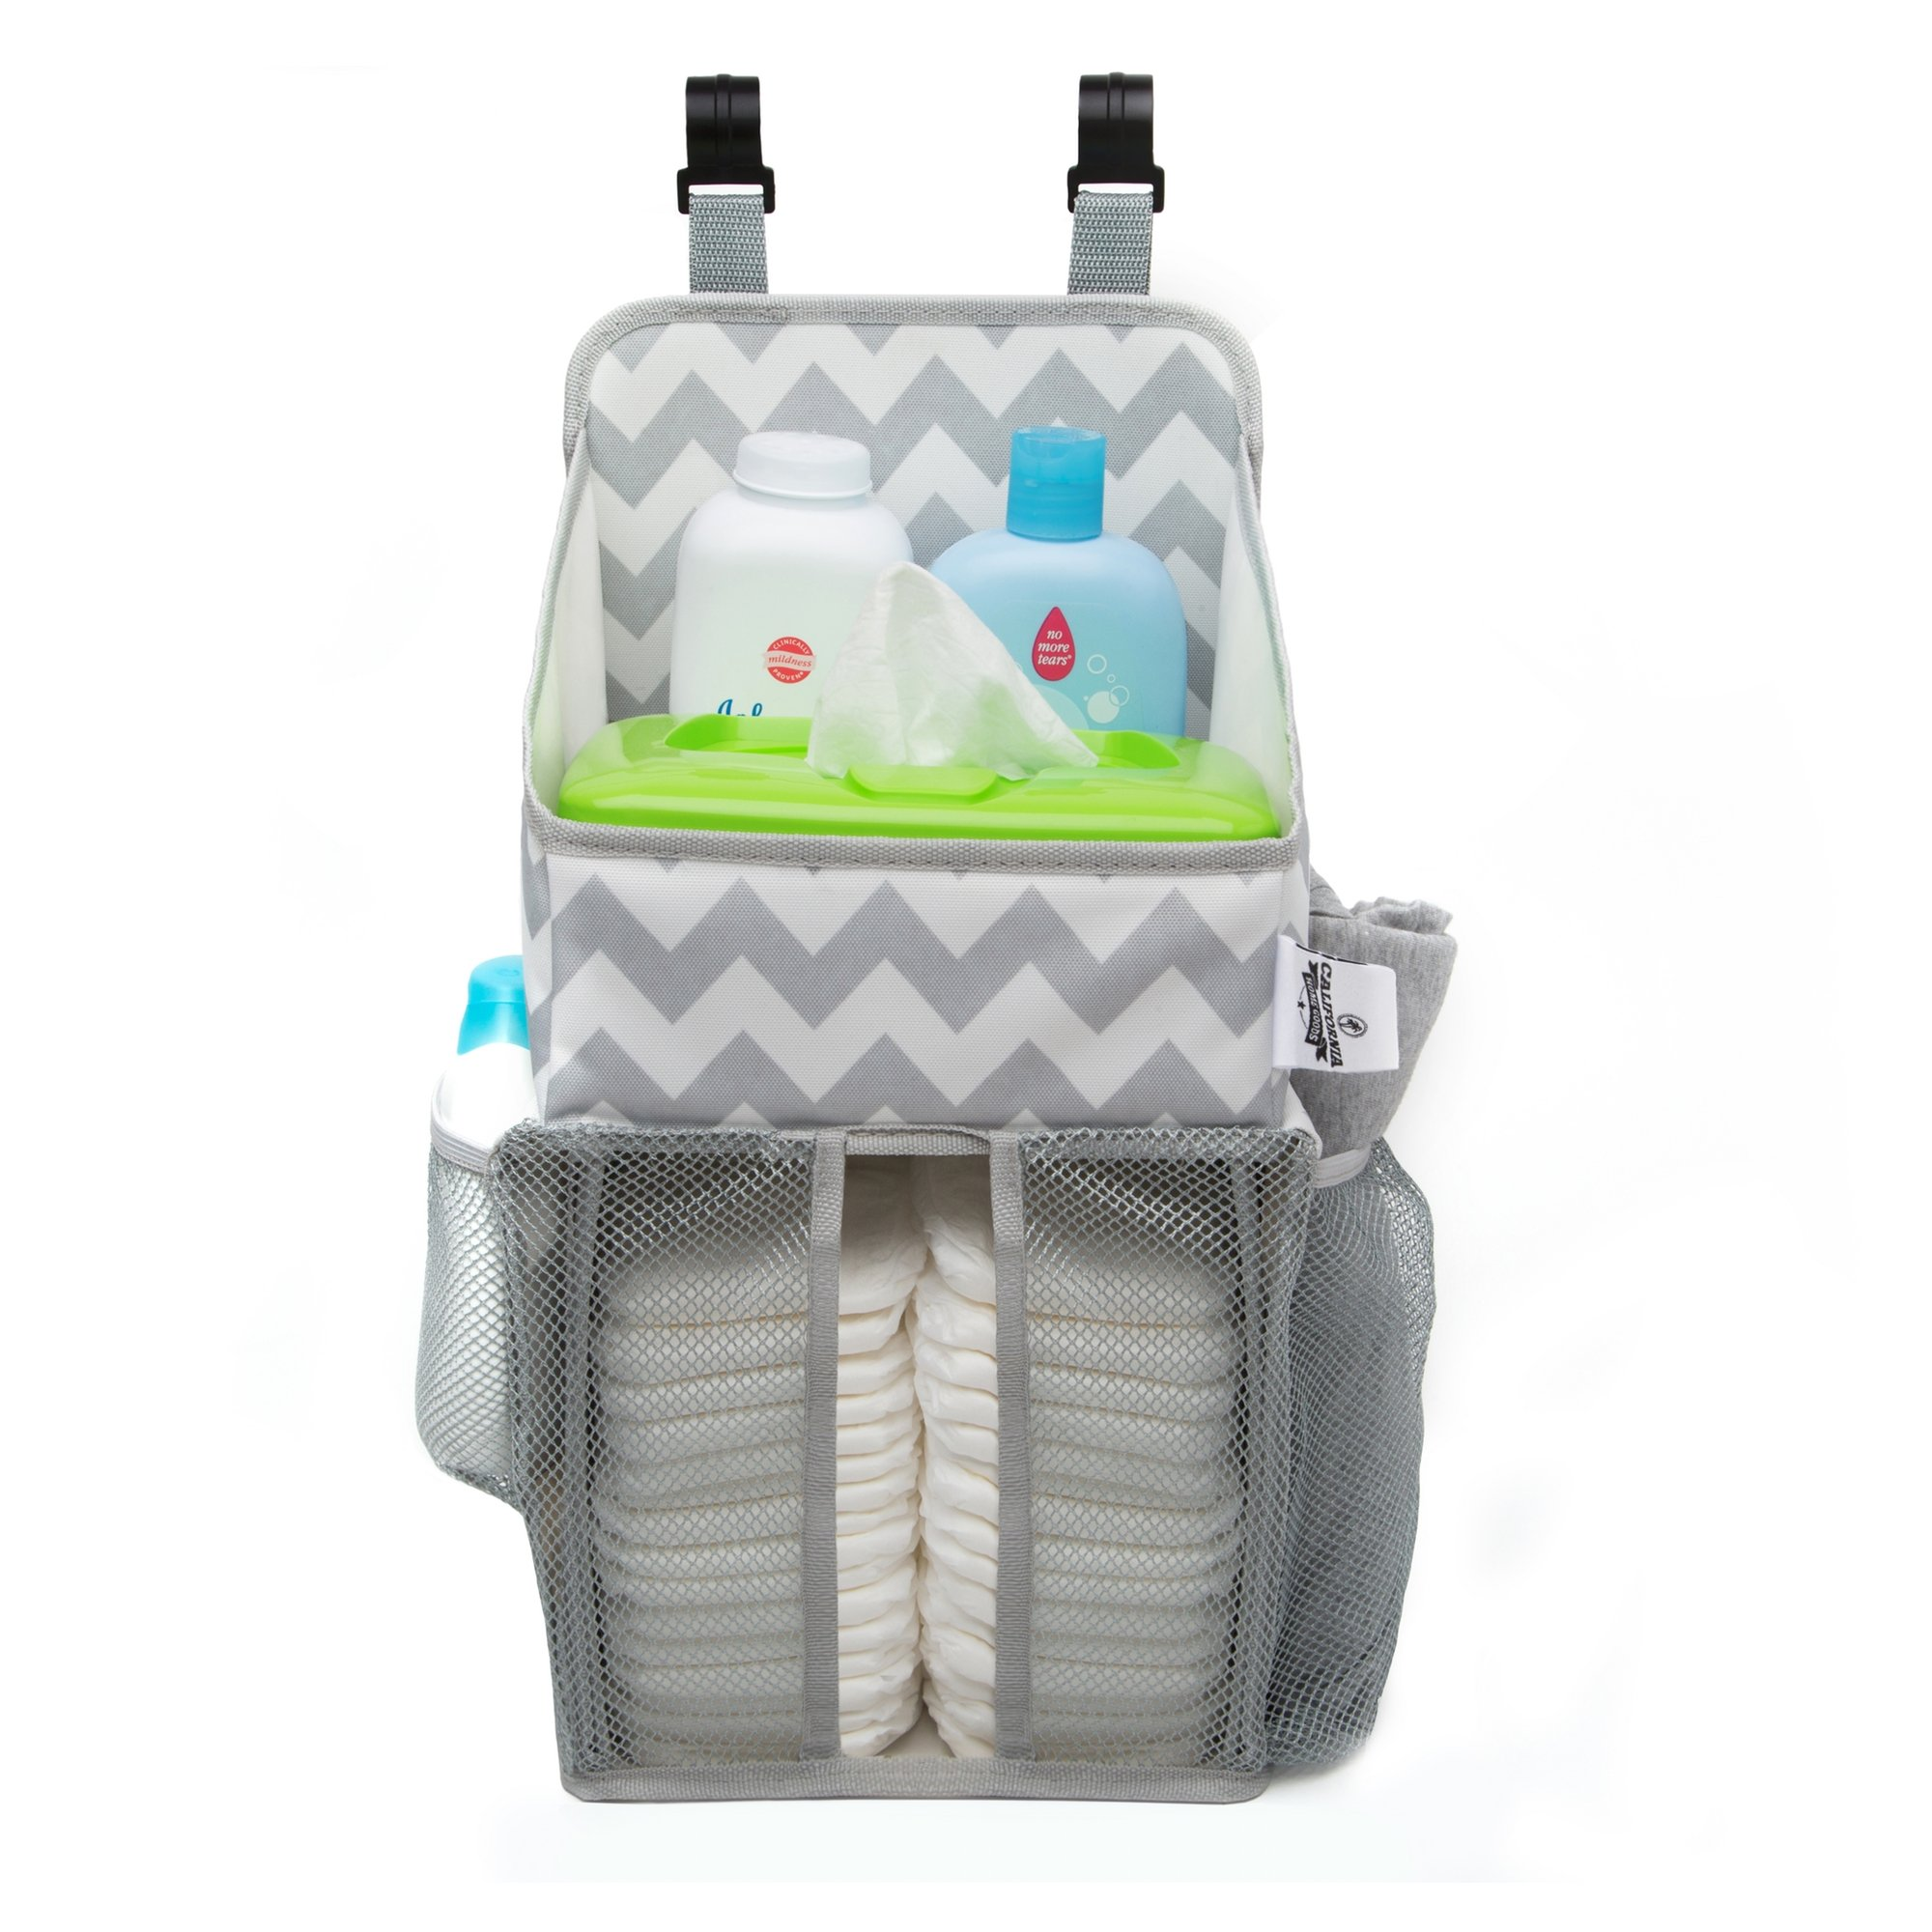 Playard Diaper Caddy and Nursery Organizer for Newborn Baby Essentials, Chevron Pattern, Grey and White, Baby Accessory Organizer by California Home Goods